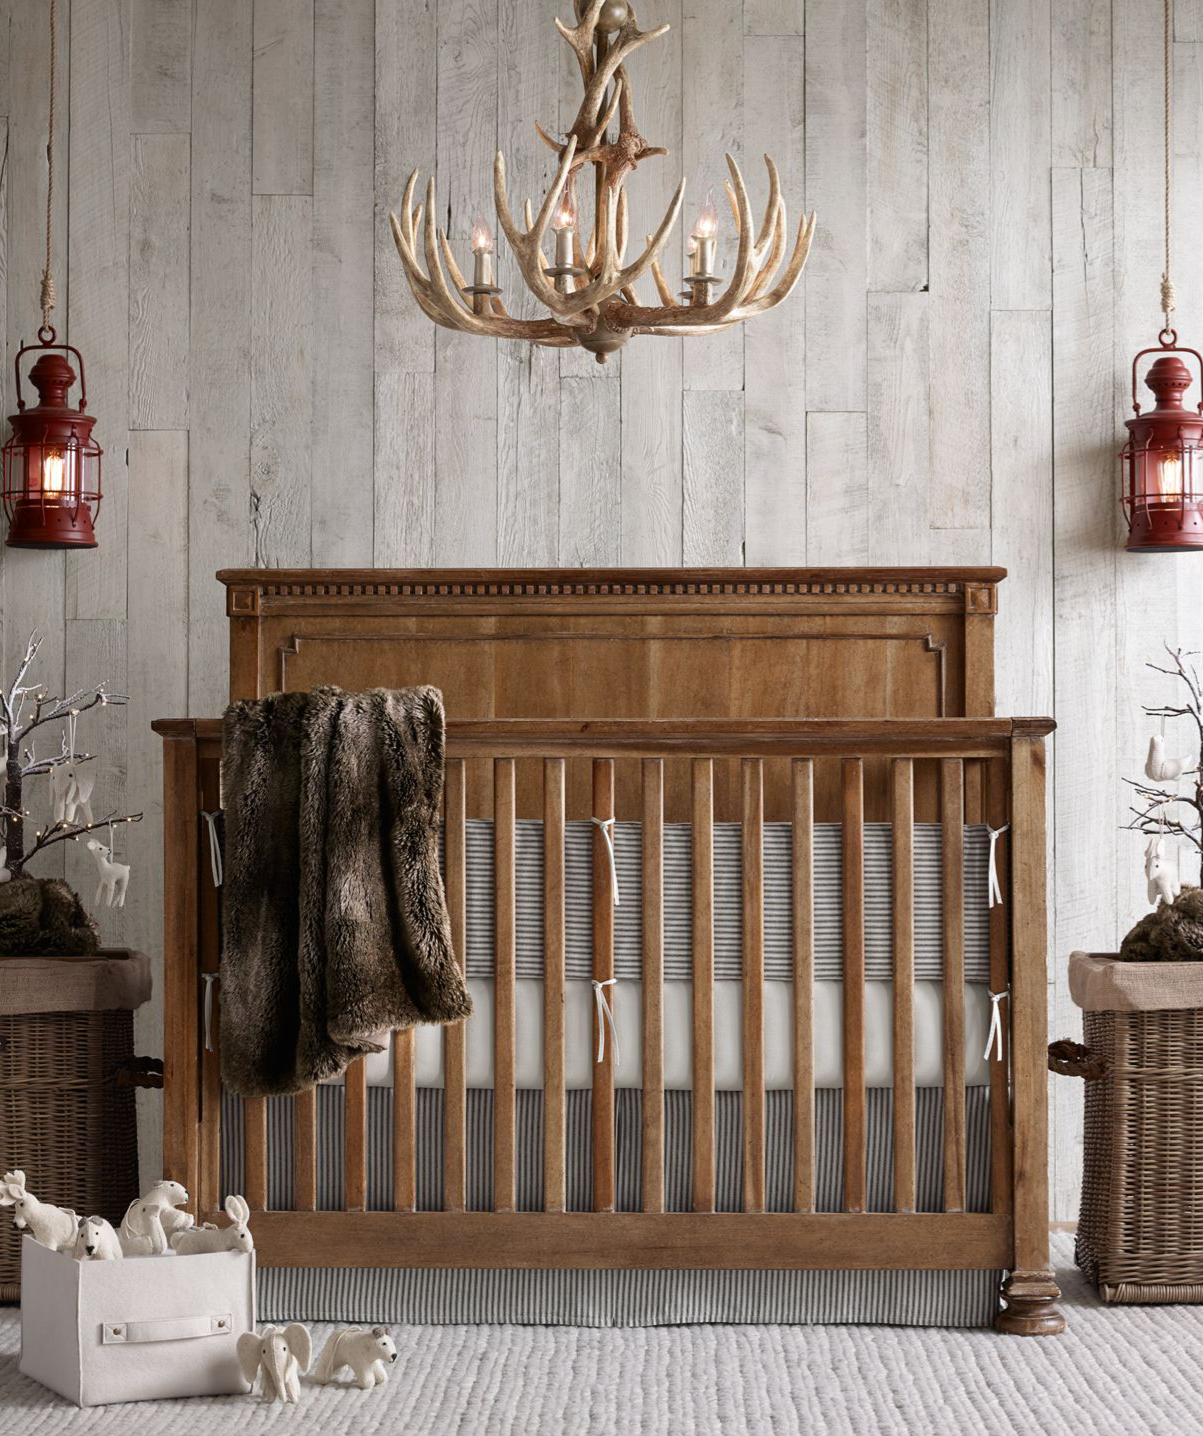 Rustic Nursery With Outdoorsy Accents Rhbabyandchild